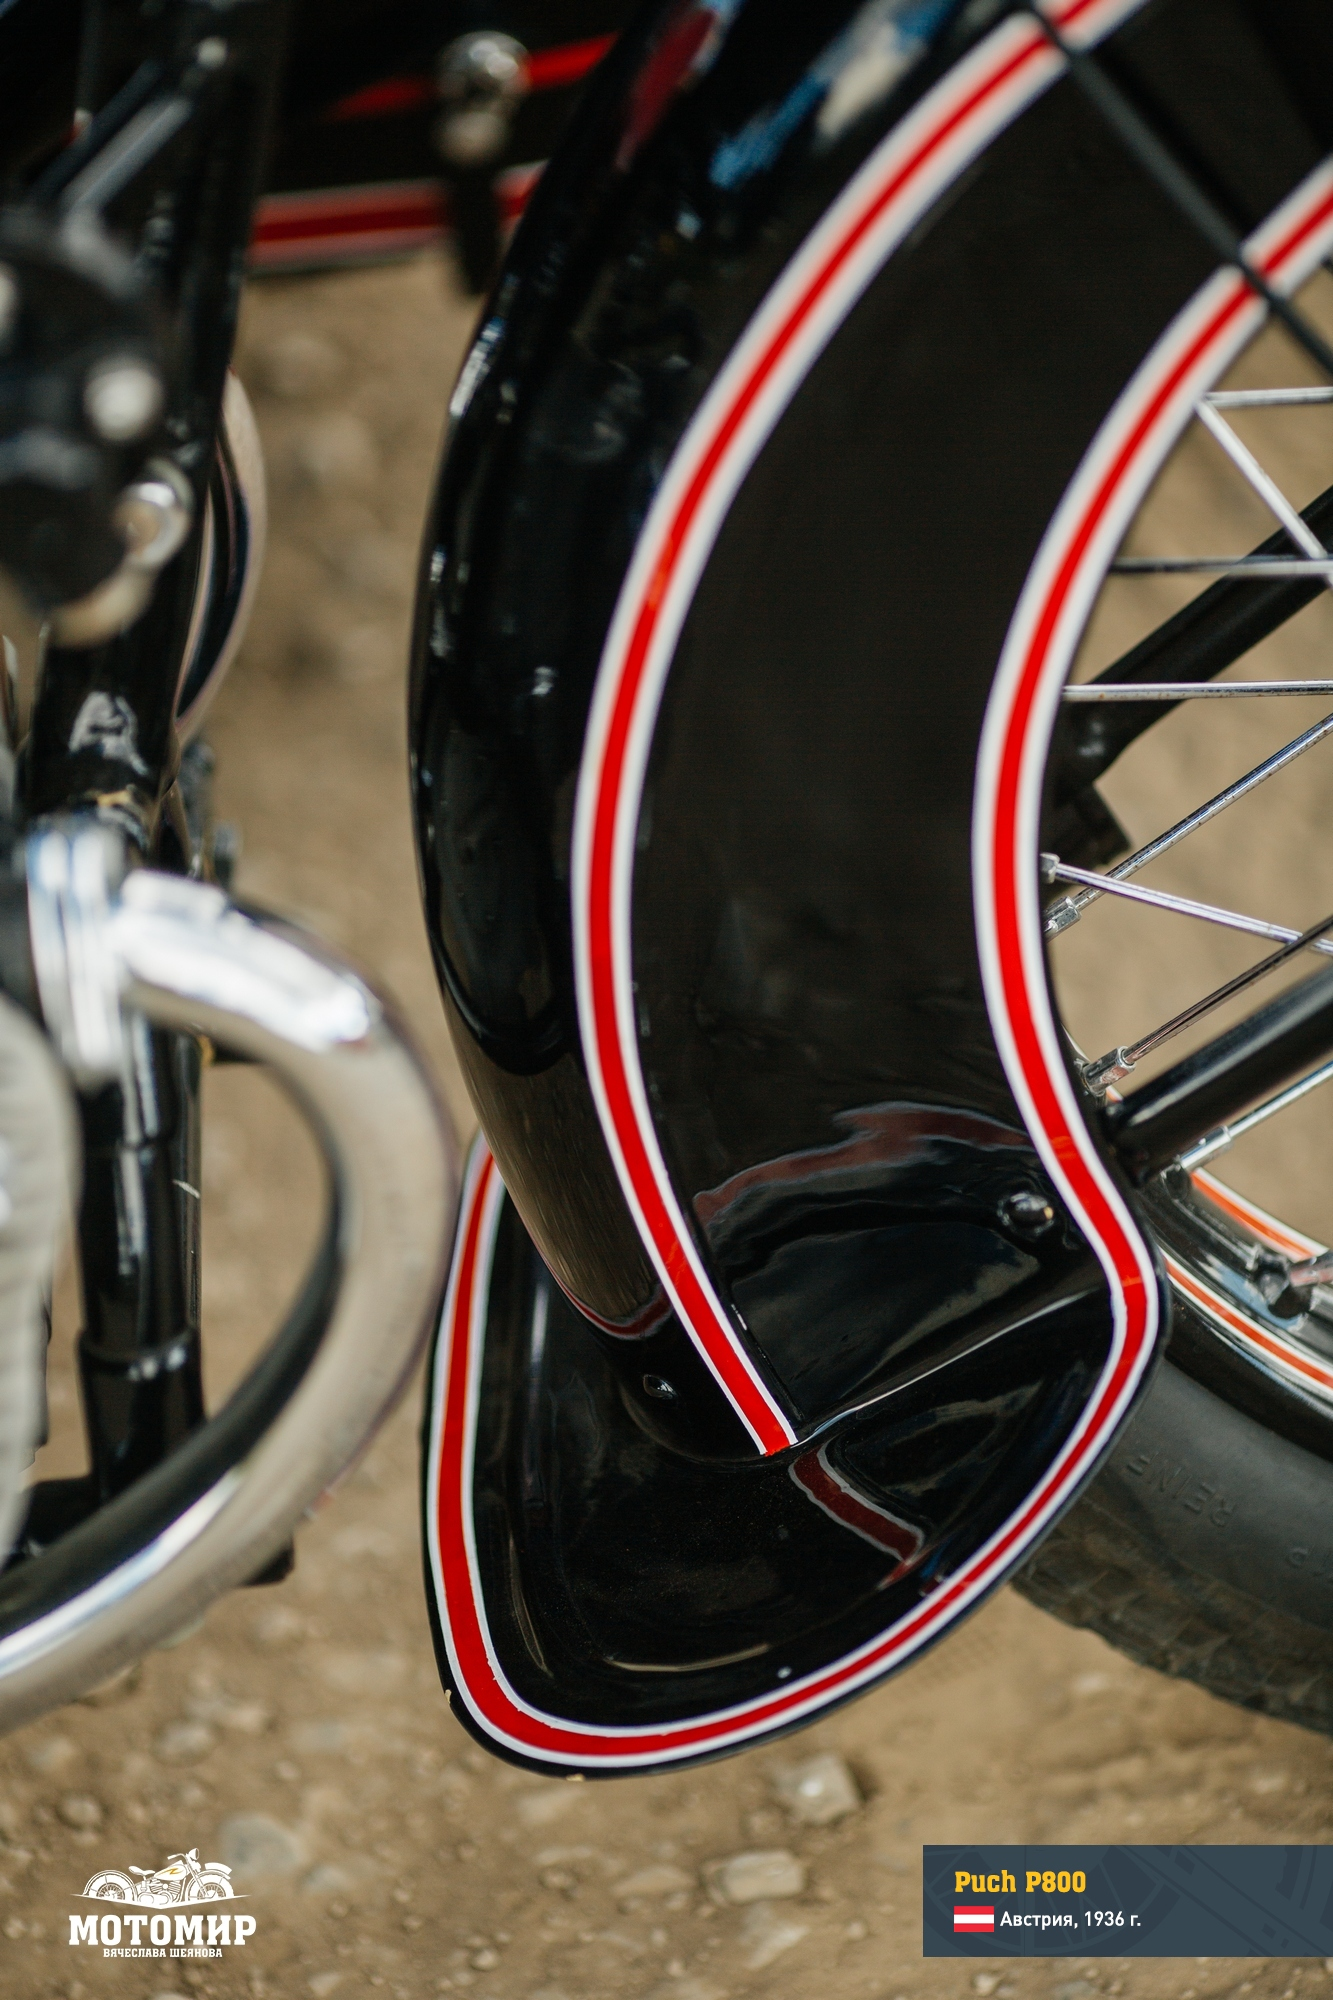 puch-p800-201510-web-16